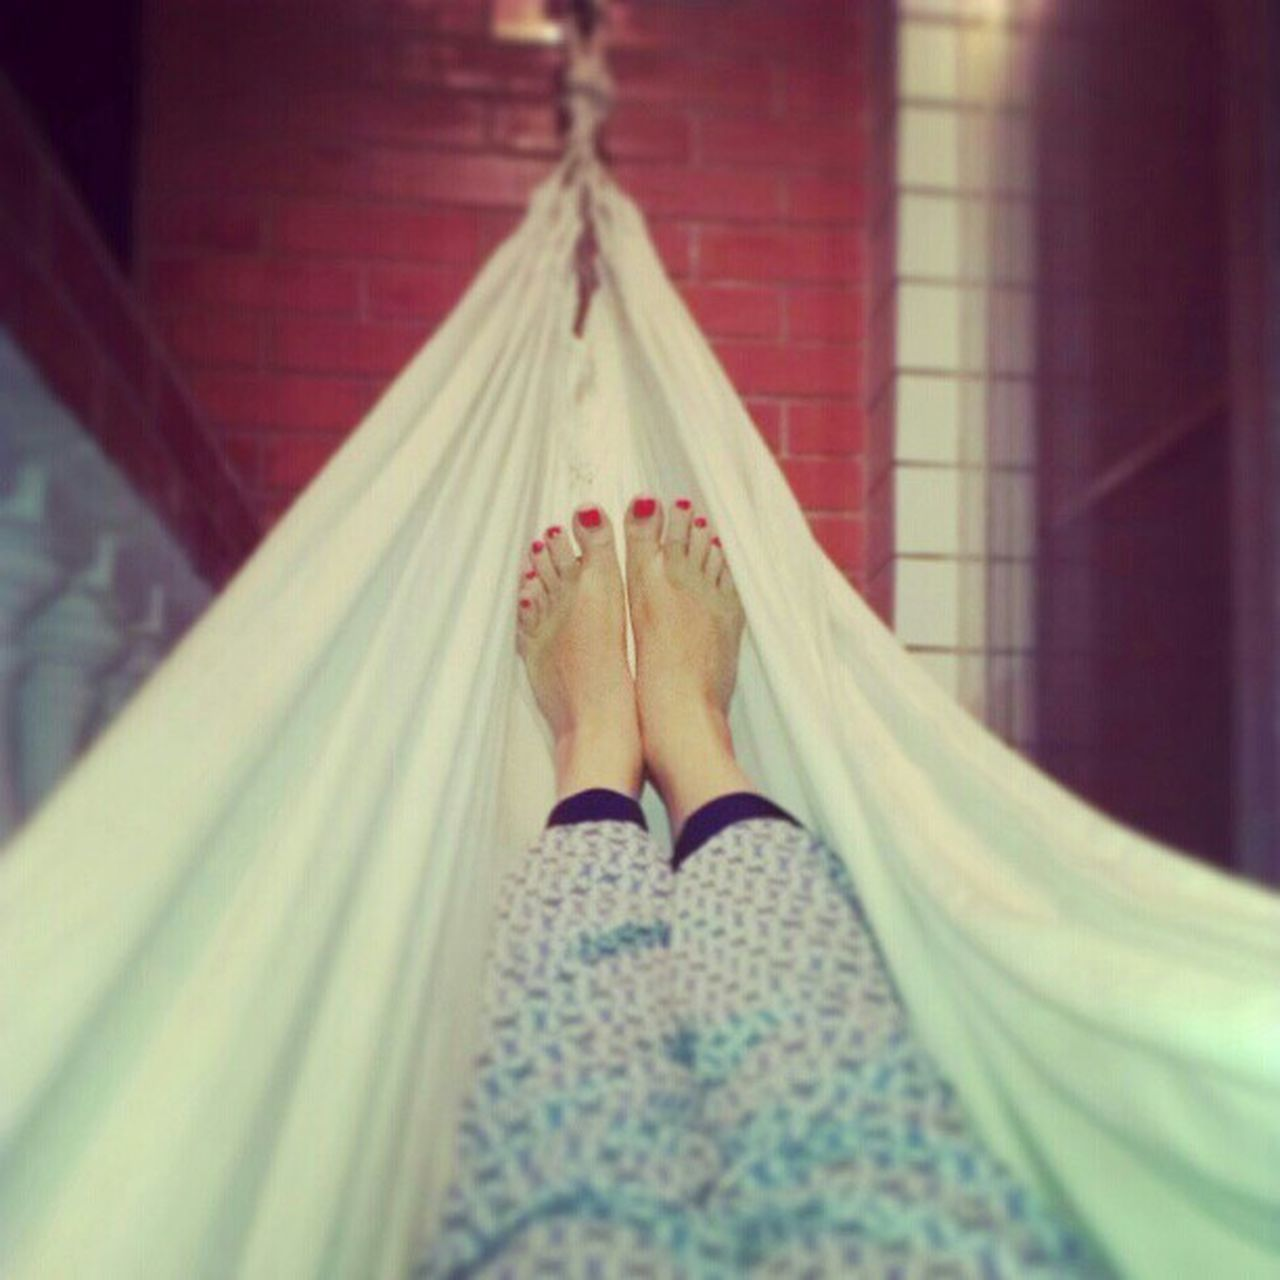 barefoot, low section, human foot, human leg, human body part, one person, personal perspective, one woman only, indoors, real people, adults only, people, day, hanging, pedicure, adult, only women, close-up